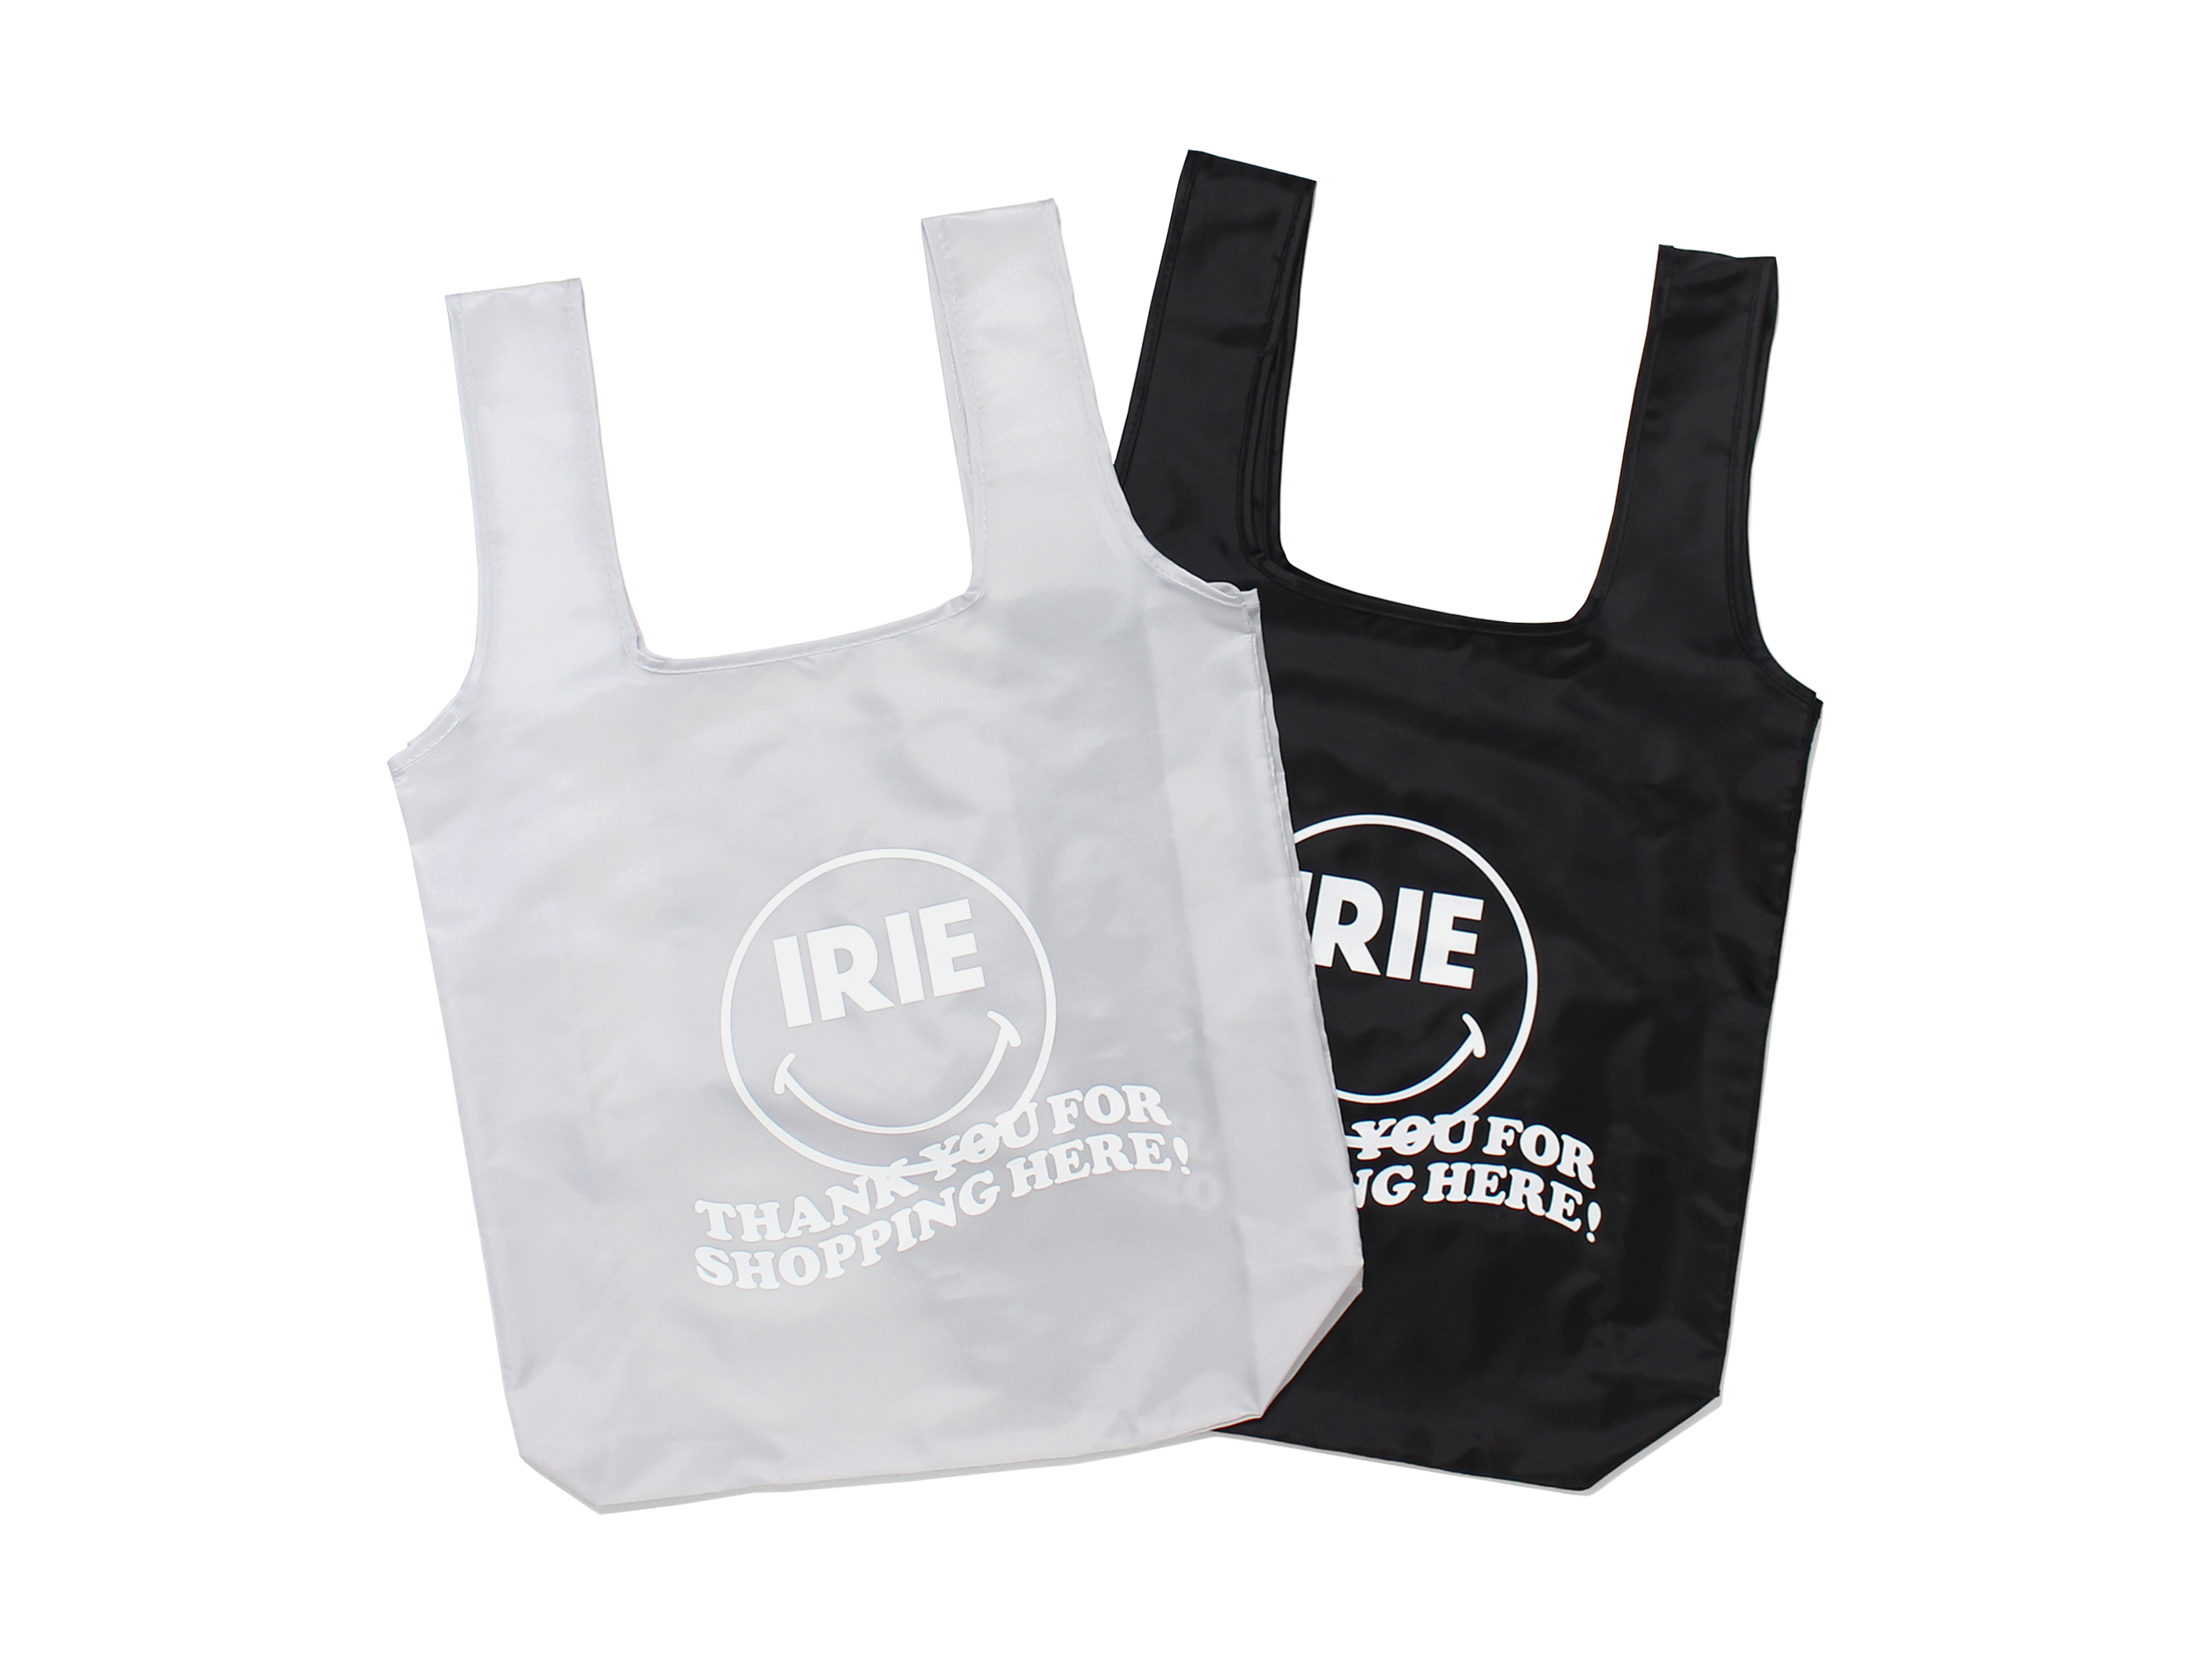 SMIRIE ECO BAG - IRIE by irielife